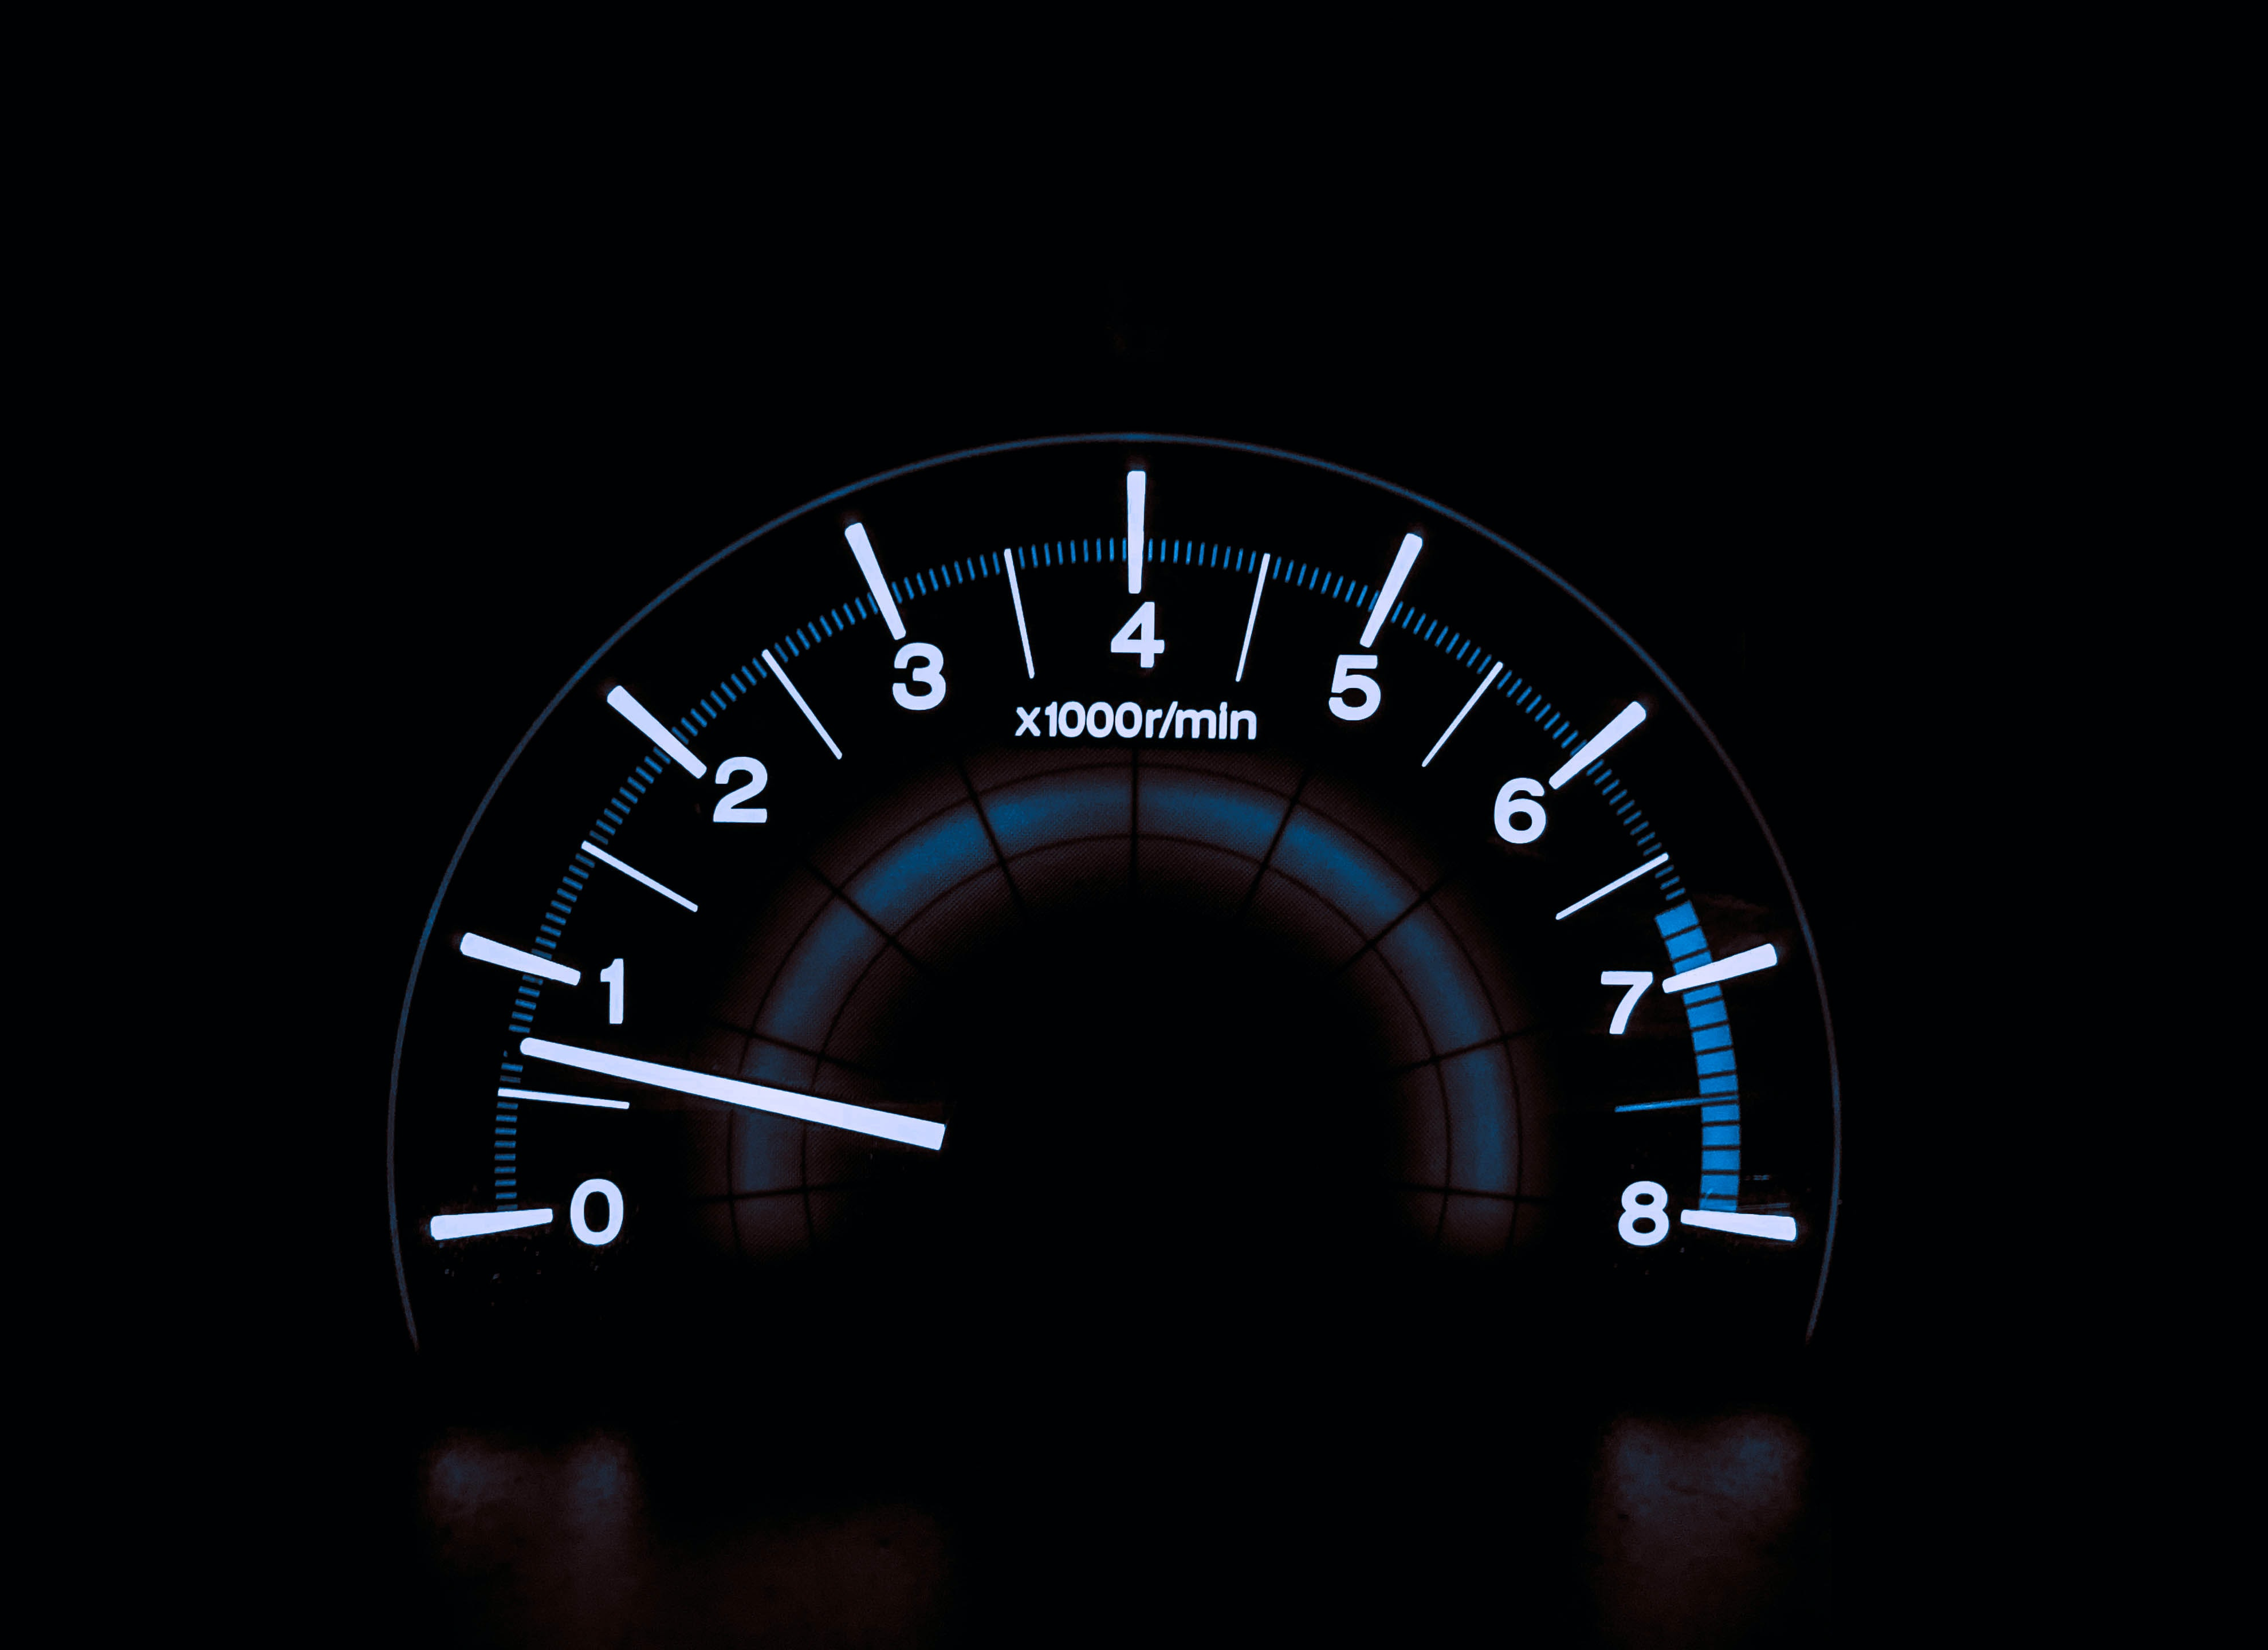 white and blue analog tachometer gauge